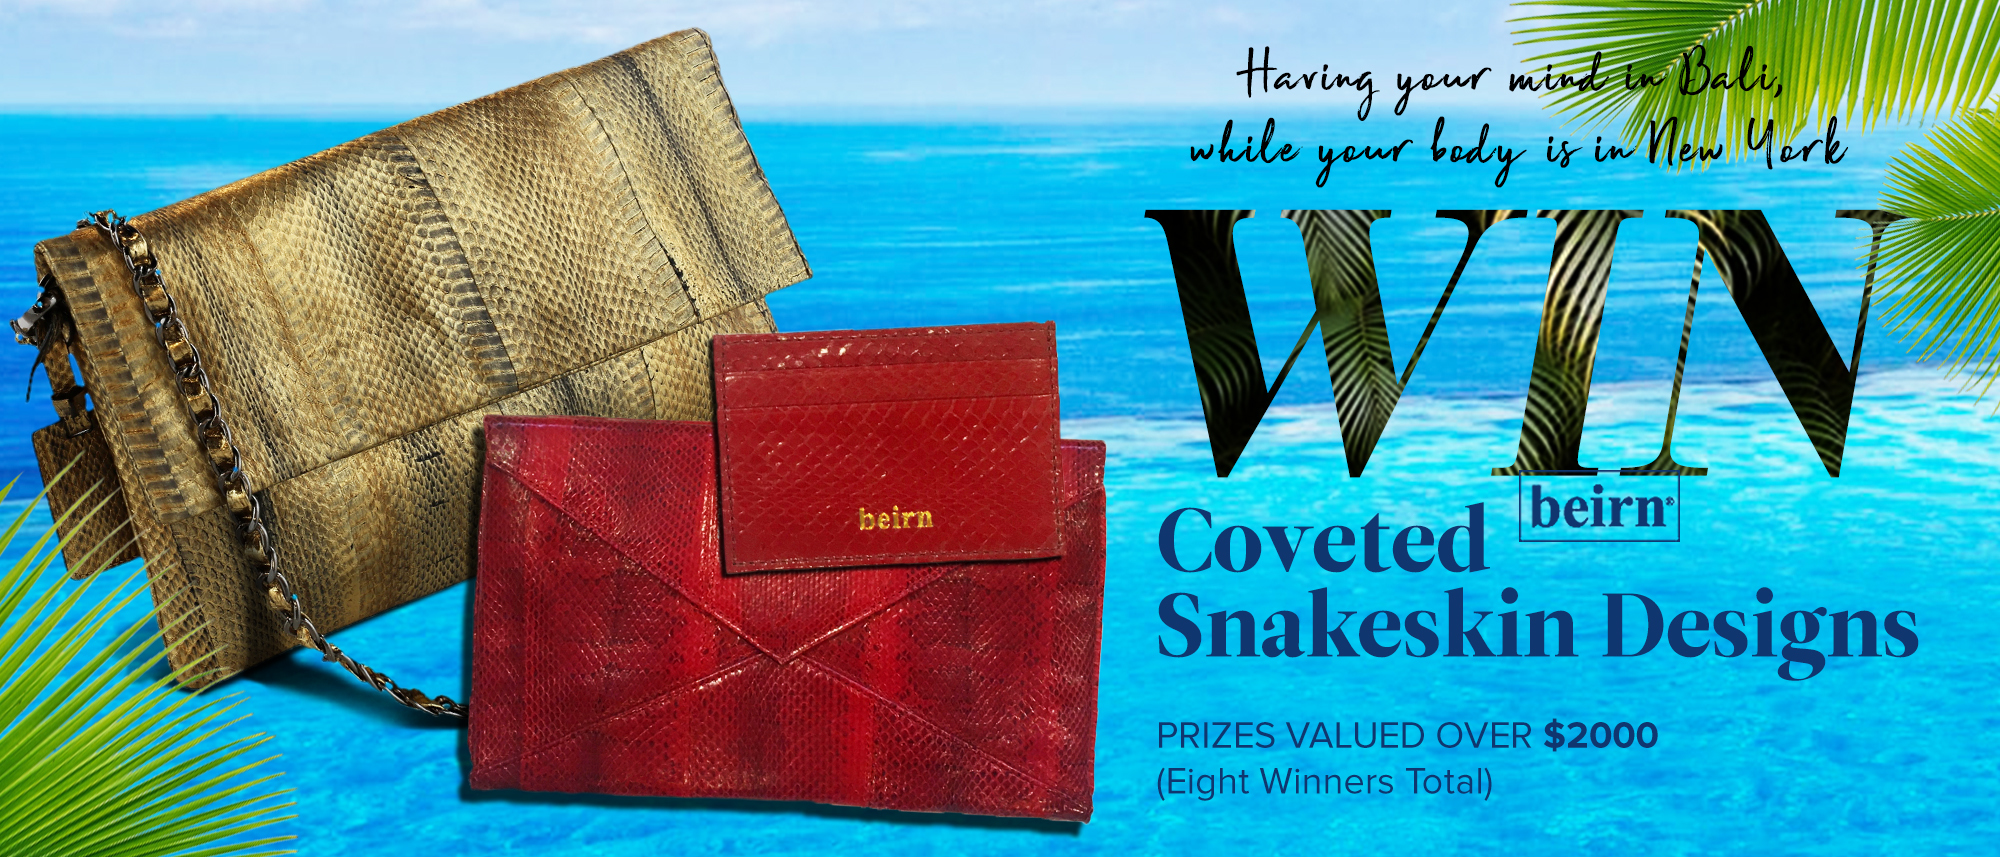 Enter for your chance to win one of 8 Beirn coveted snakeskin designs inspired by the beaches of Bali.Beirn bags are handmade and painted making no two bags the same.